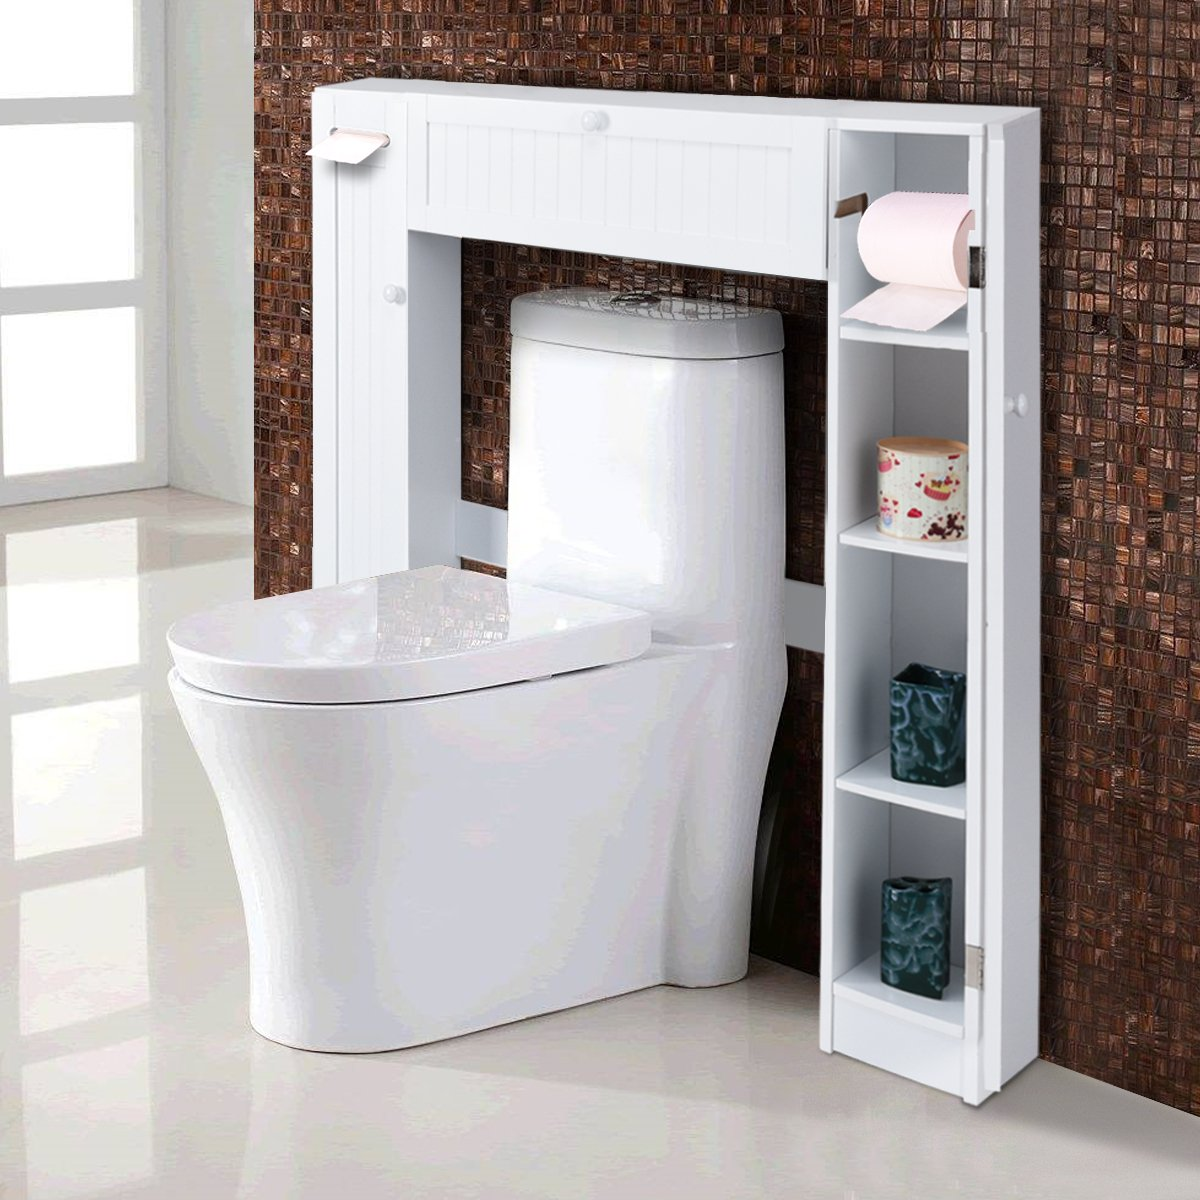 Giantex Over-The-Toilet Bathroom Storage Cabinet Wooden Drop Door Freestanding Spacesaver Improvements, White by Giantex